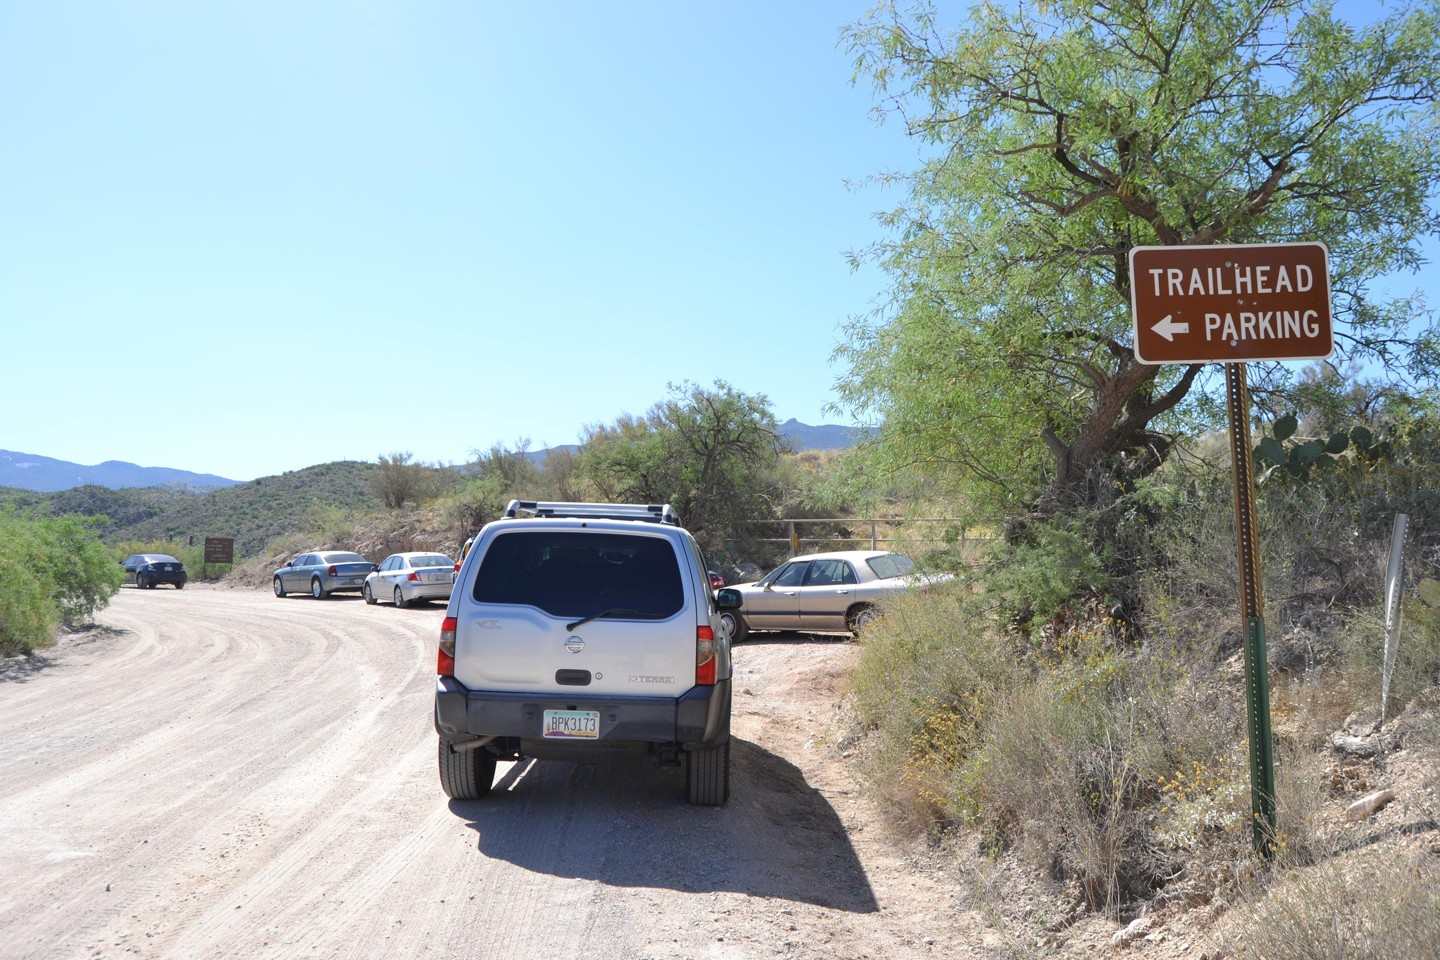 Redington Pass - Waypoint 4: Lower Tanque Verde Trail Parking lot (Stay Right)